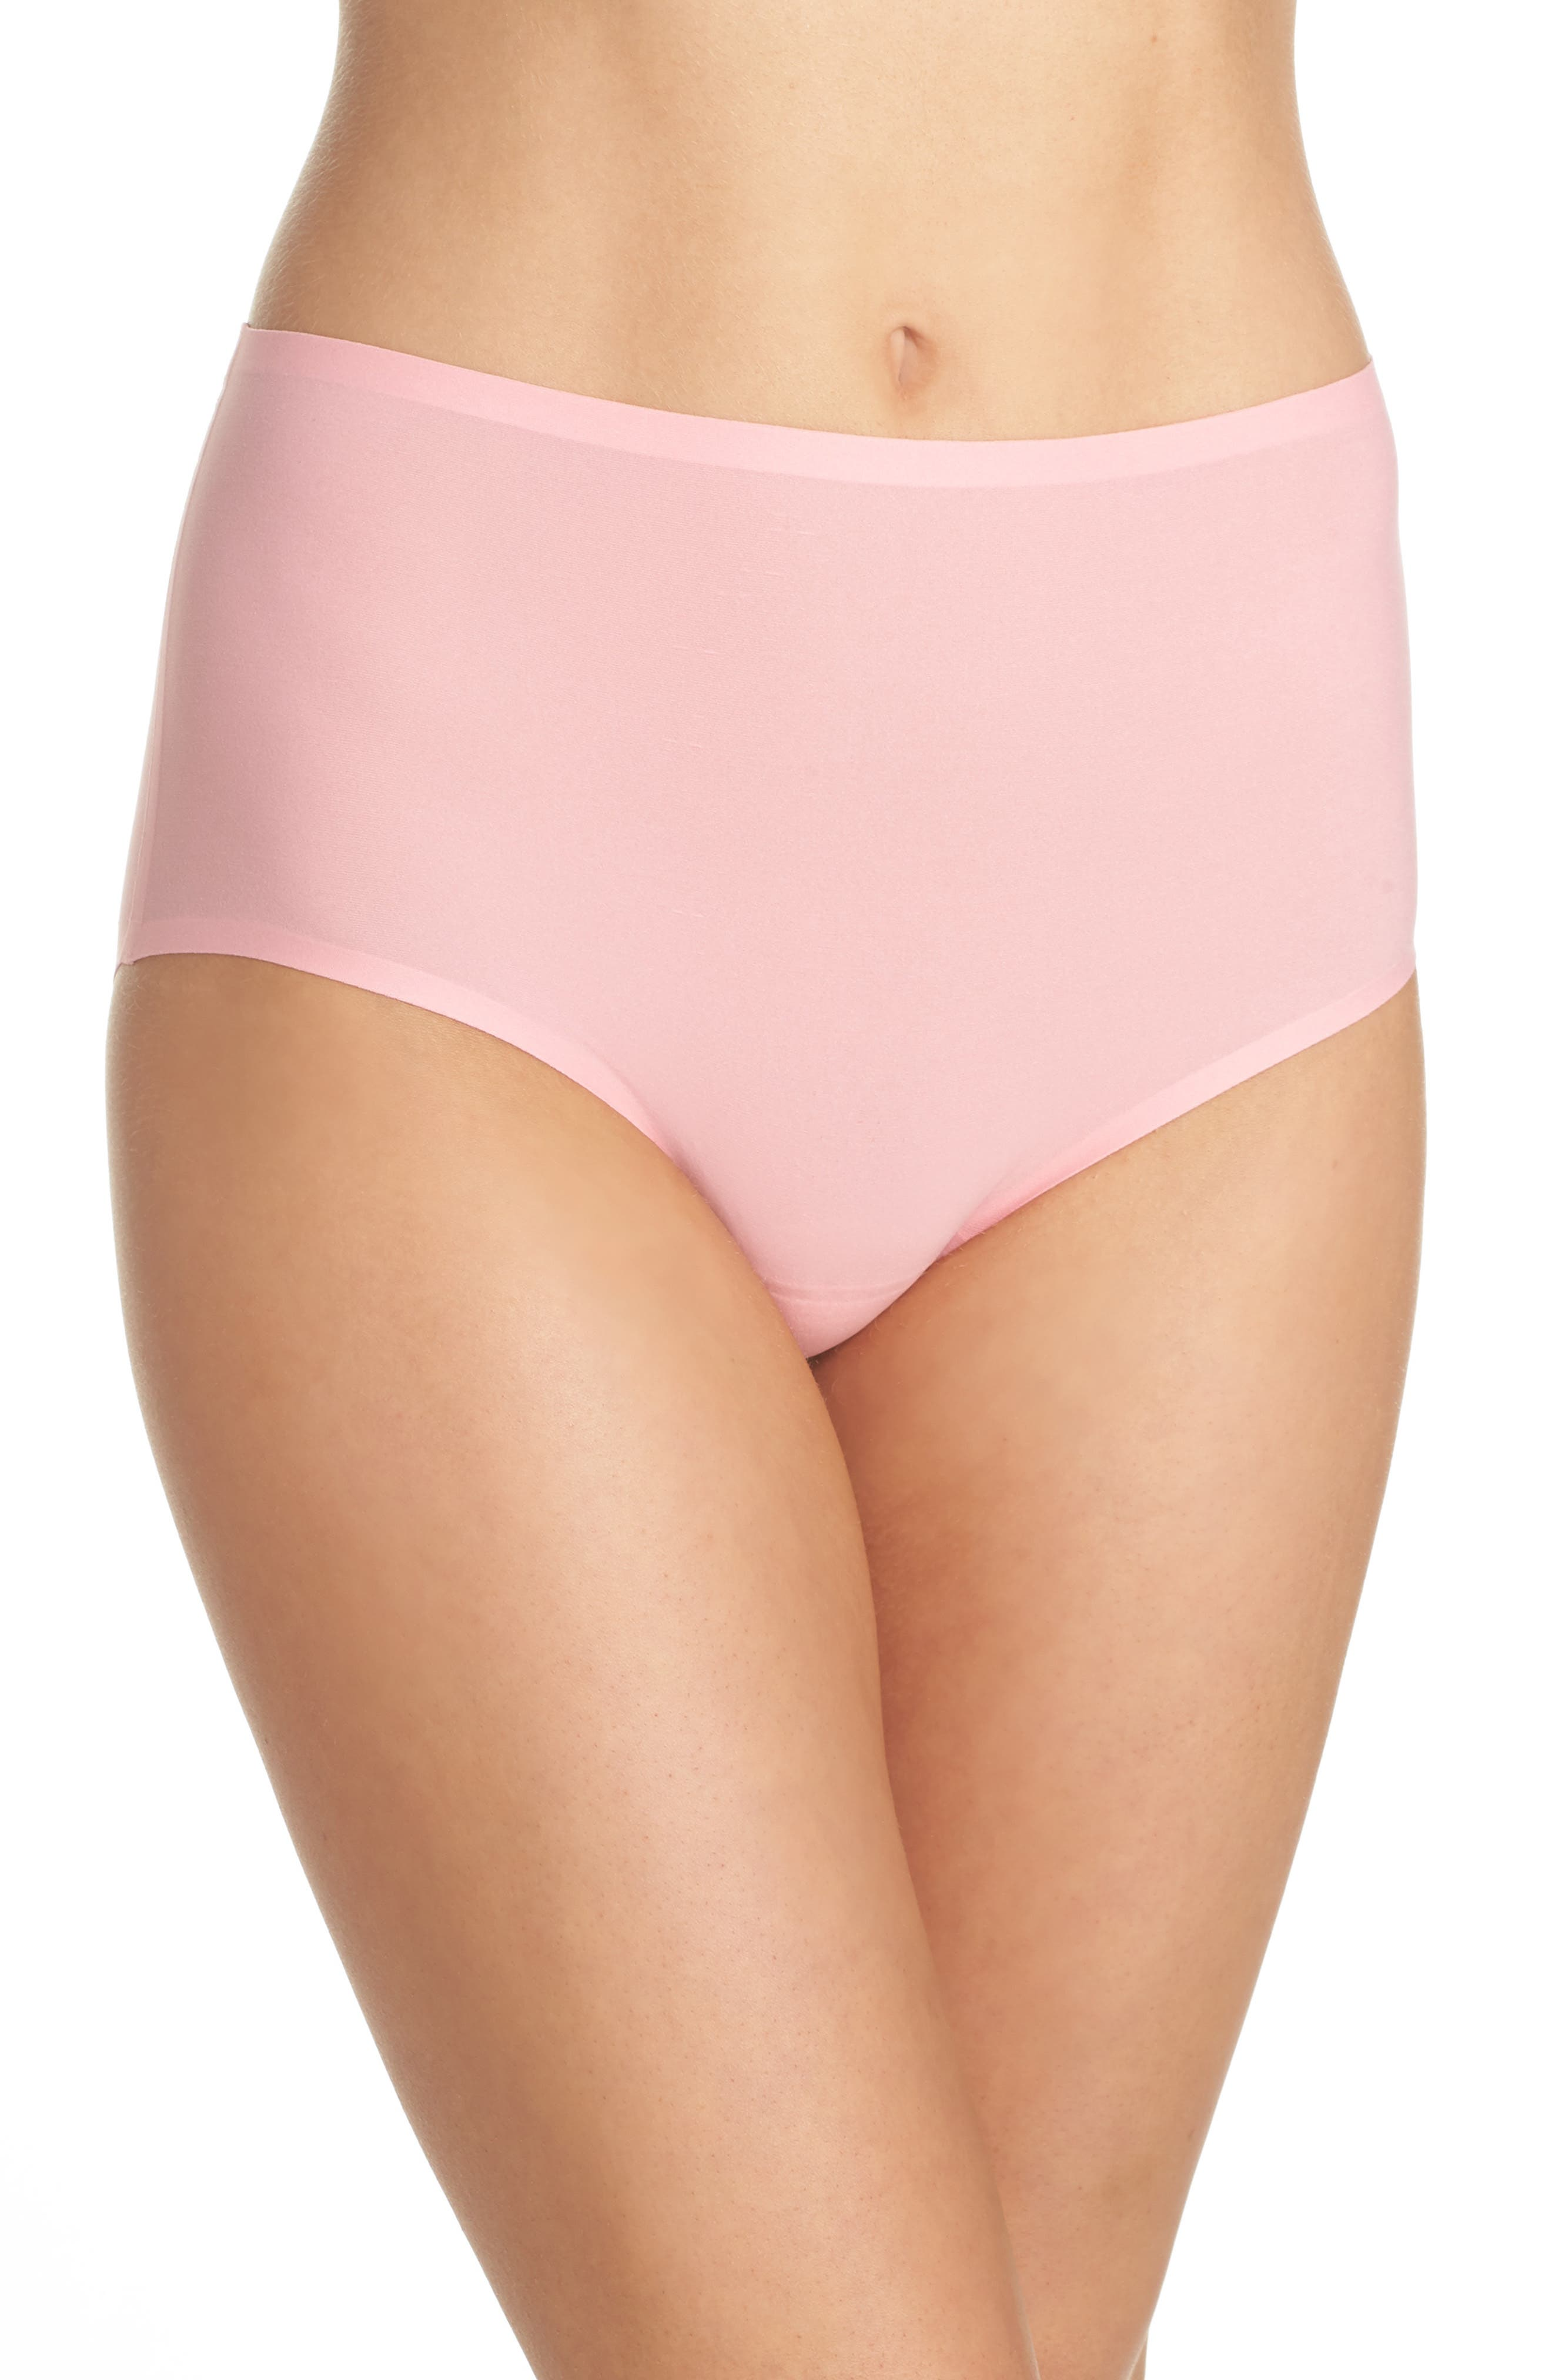 Main Image - Chantelle Intimates Soft Stretch High Waist Seamless Briefs (3 for $45)